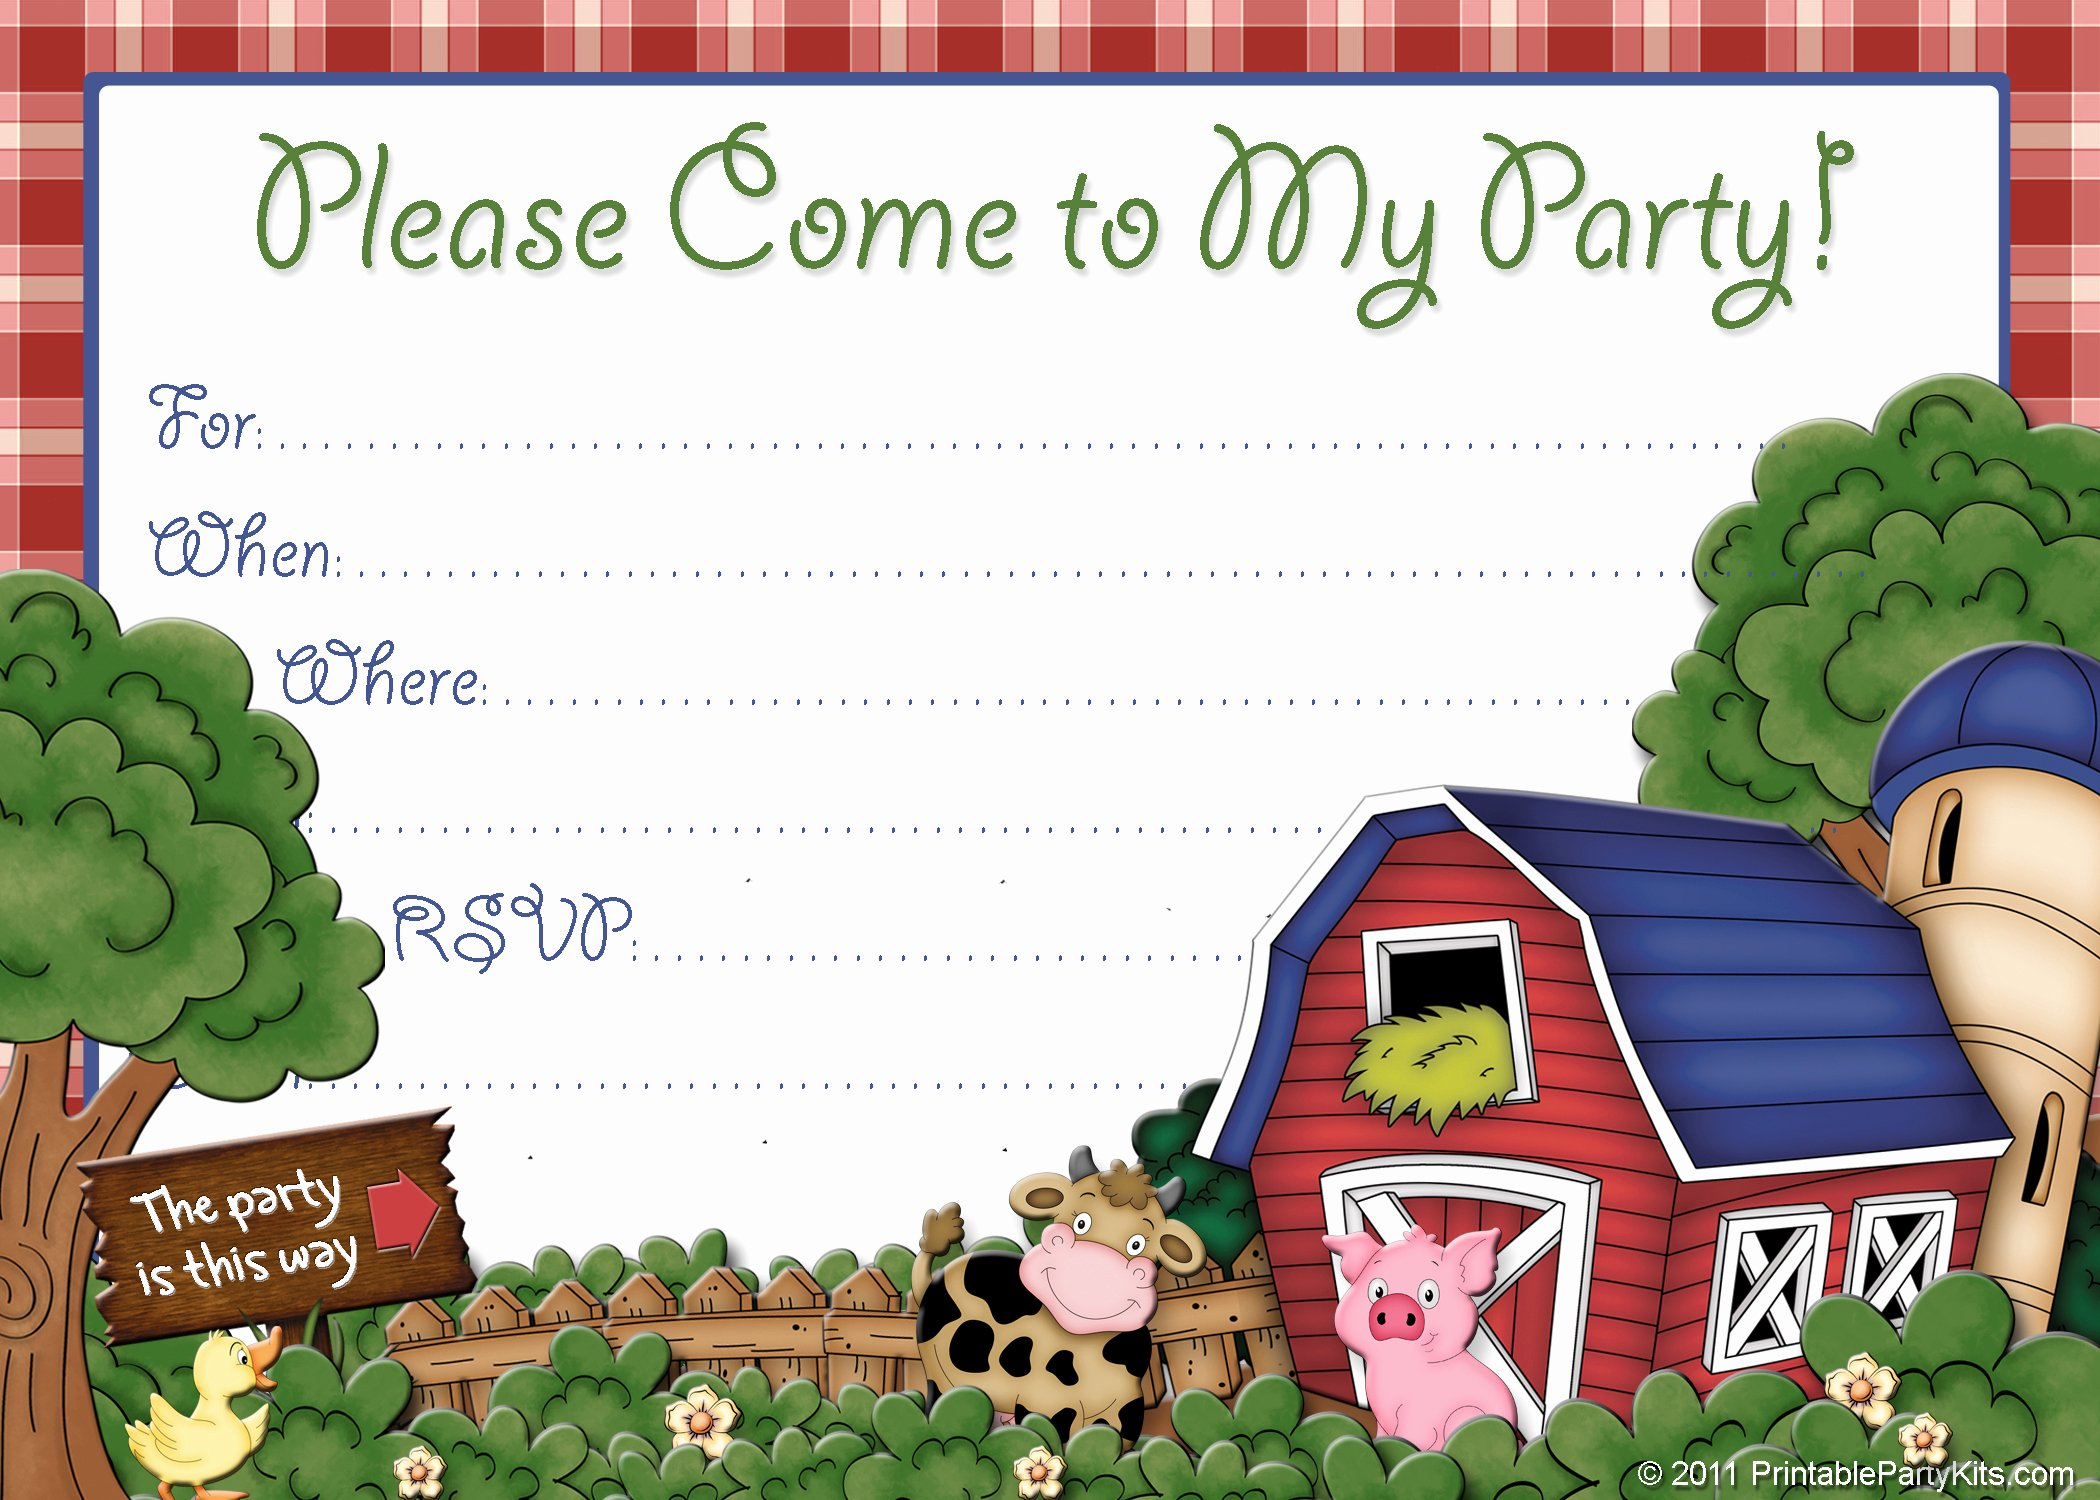 Printable Birthday Party Invitations Elegant Free Farm Birthday Invitations – Free Printable Birthday